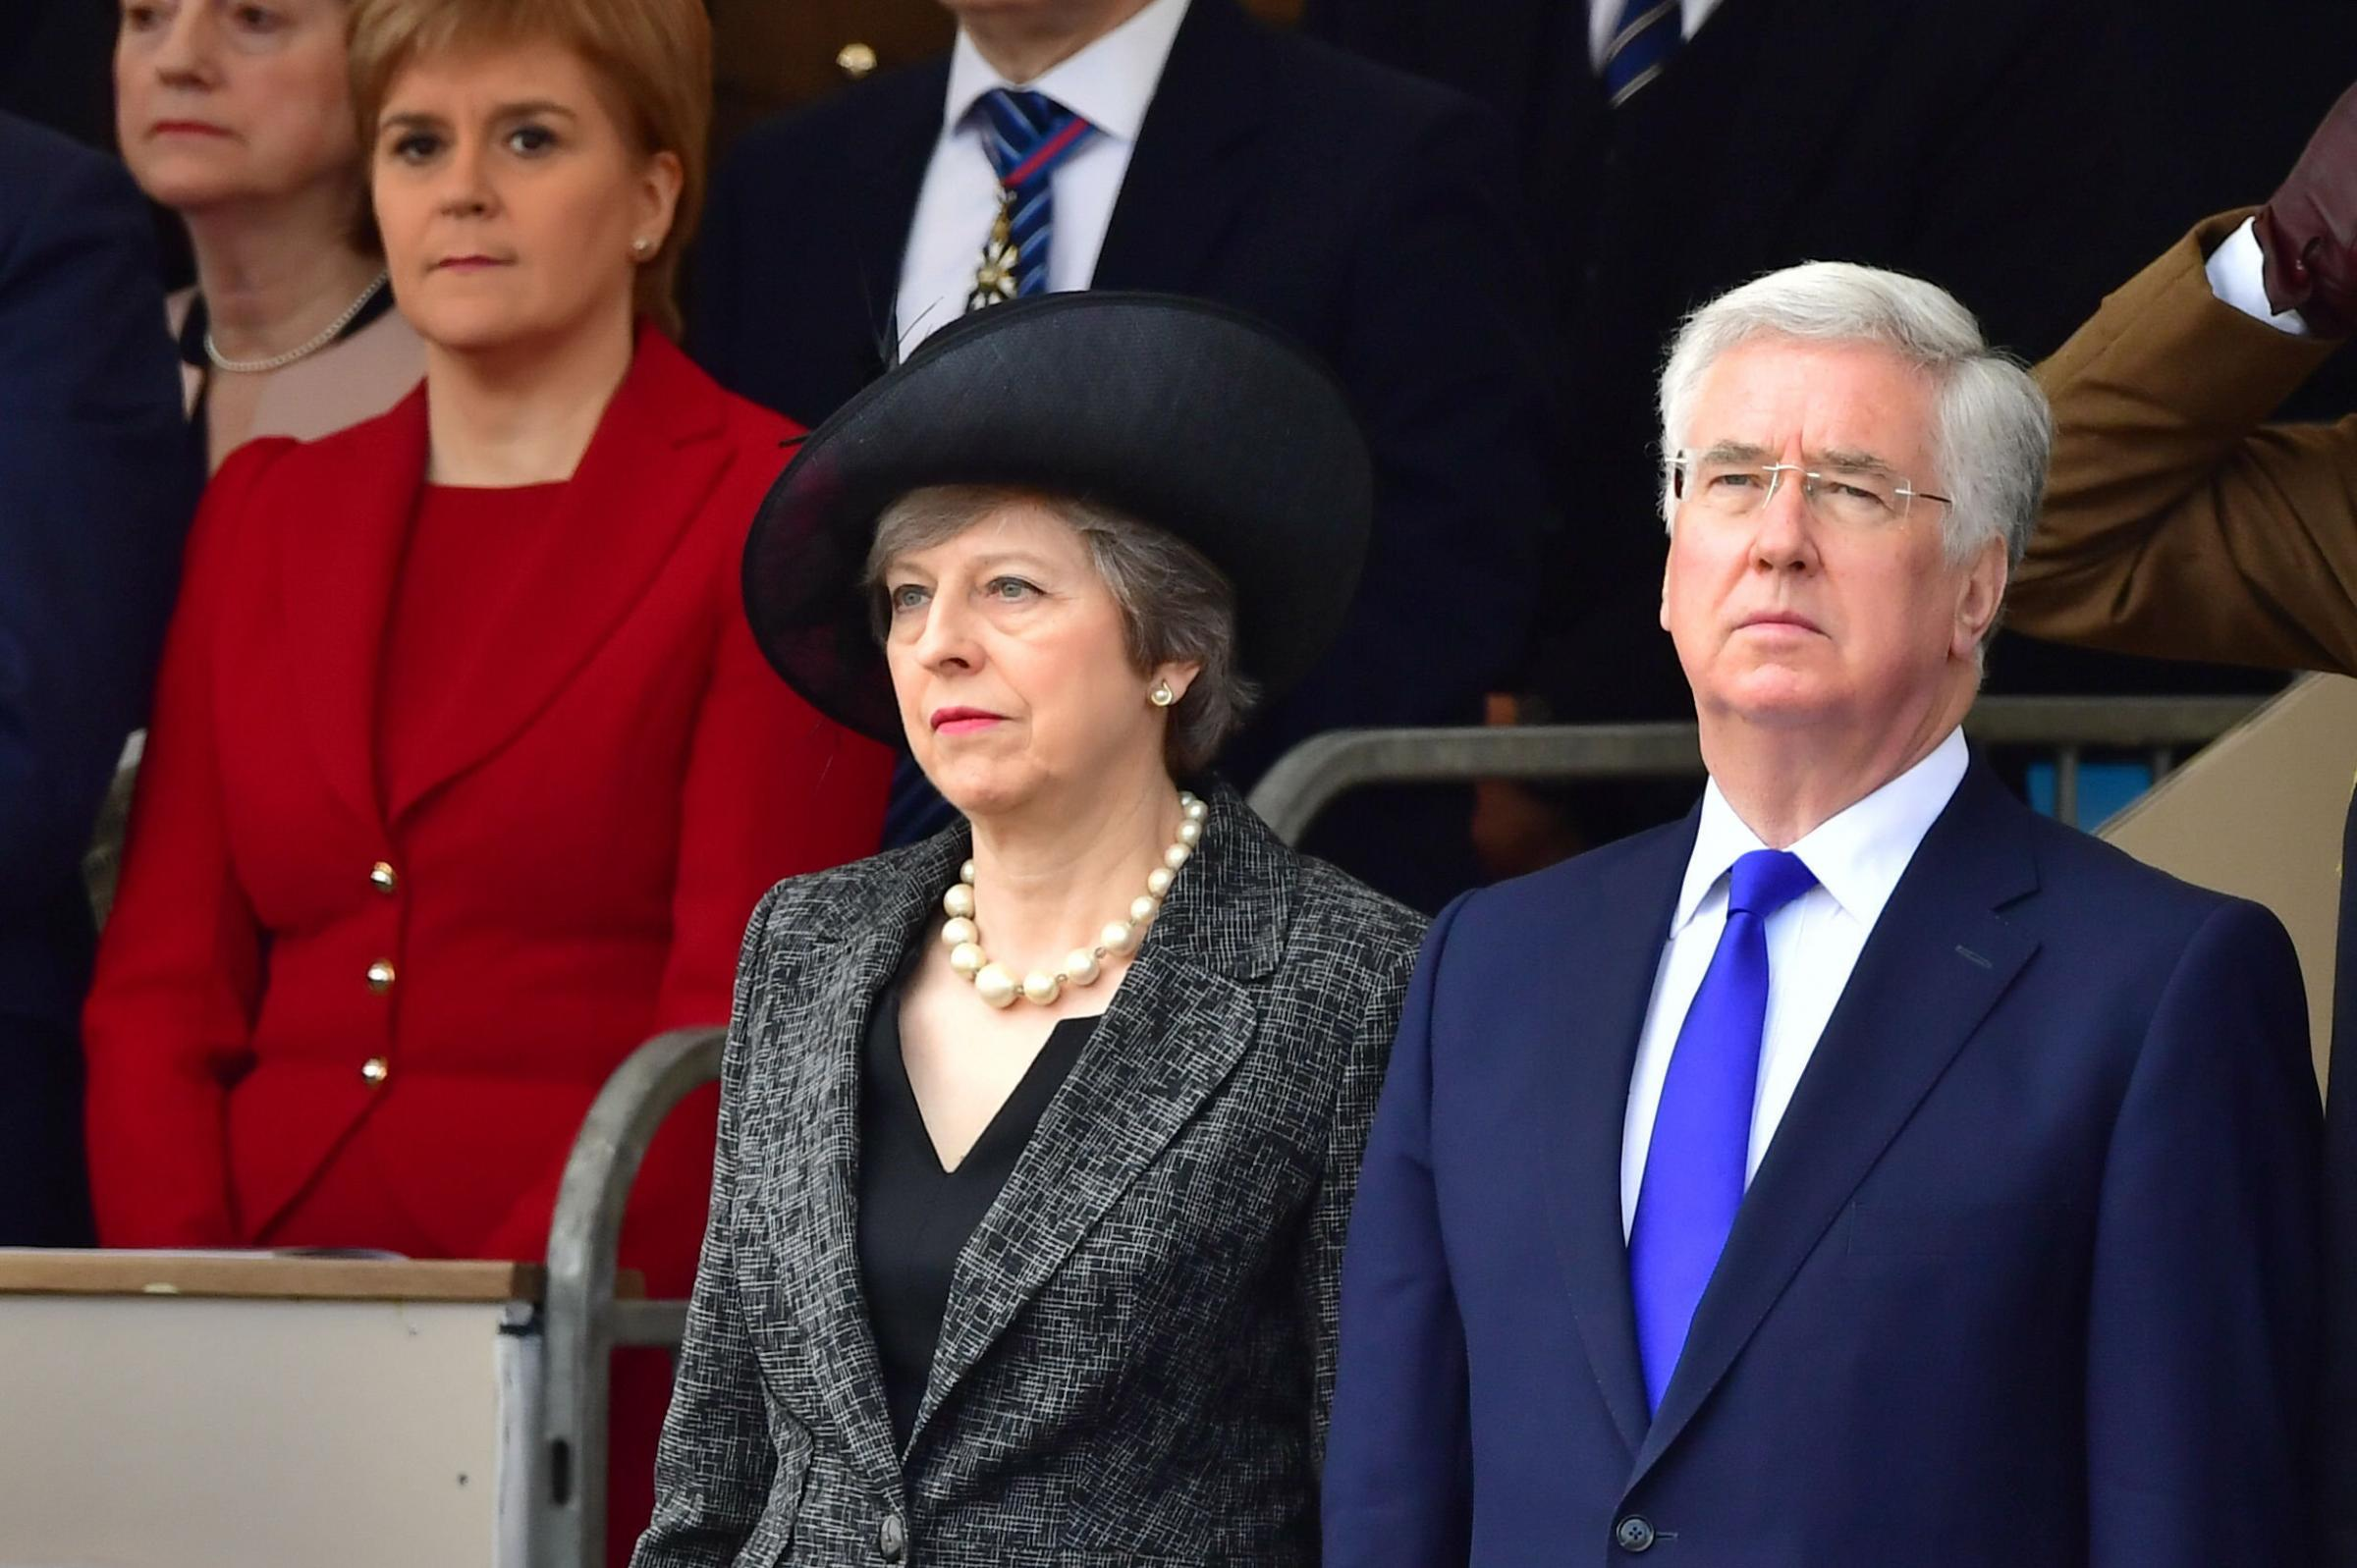 Theresa May may be forced to reshuffle her Cabinet sooner than planned following the resignation of defence secretary Michael Fallon